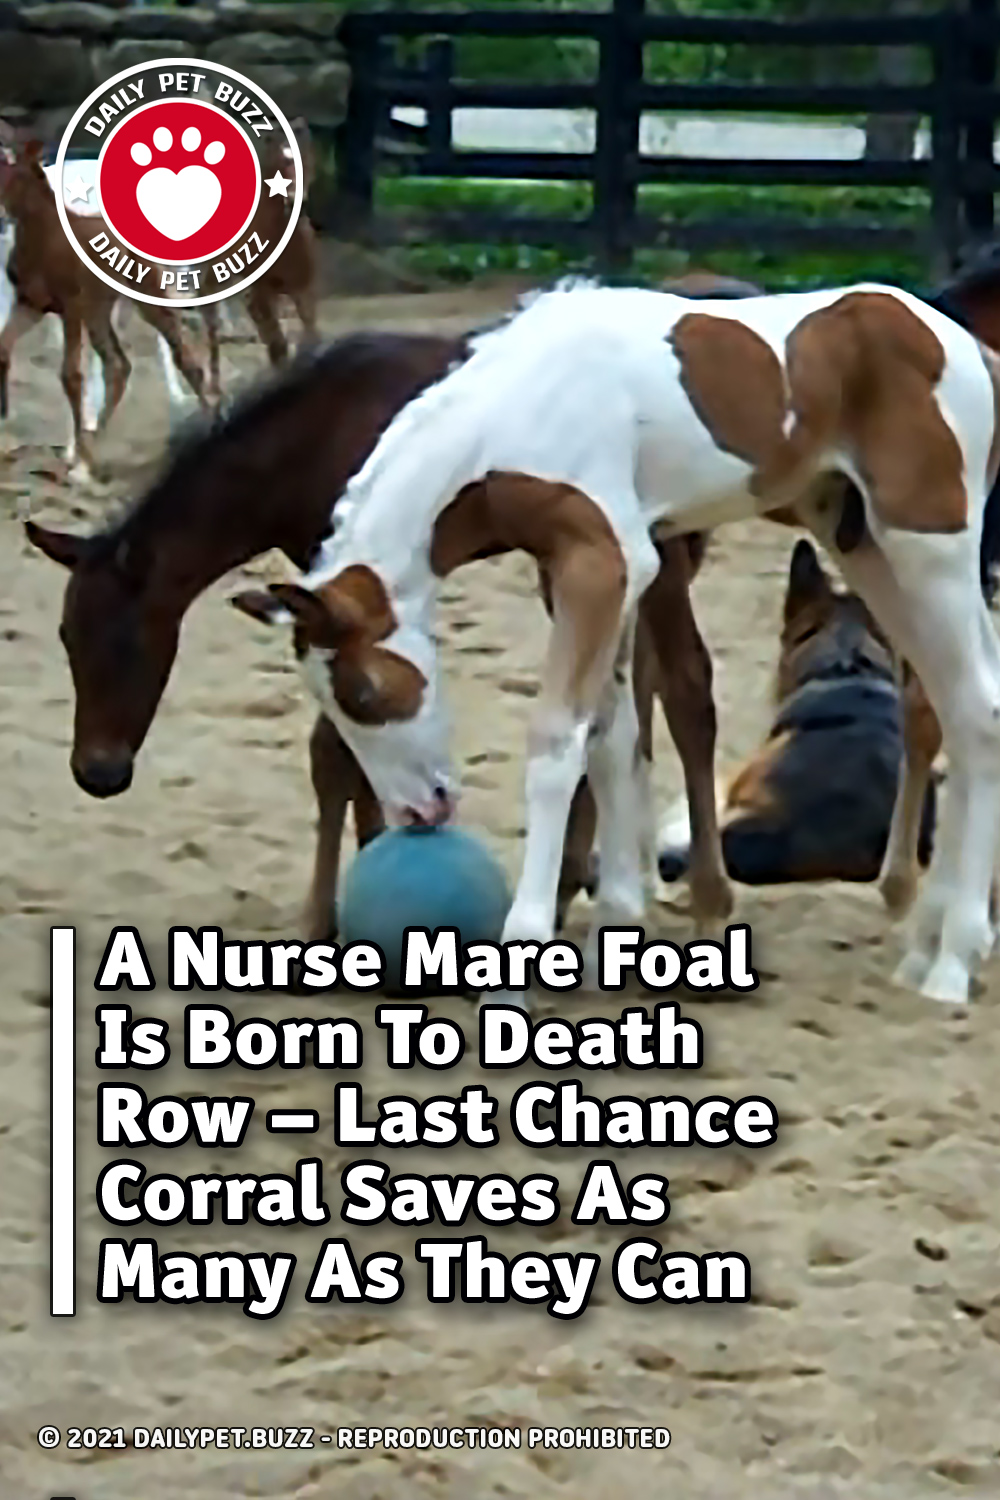 A Nurse Mare Foal Is Born To Death Row – Last Chance Corral Saves As Many As They Can